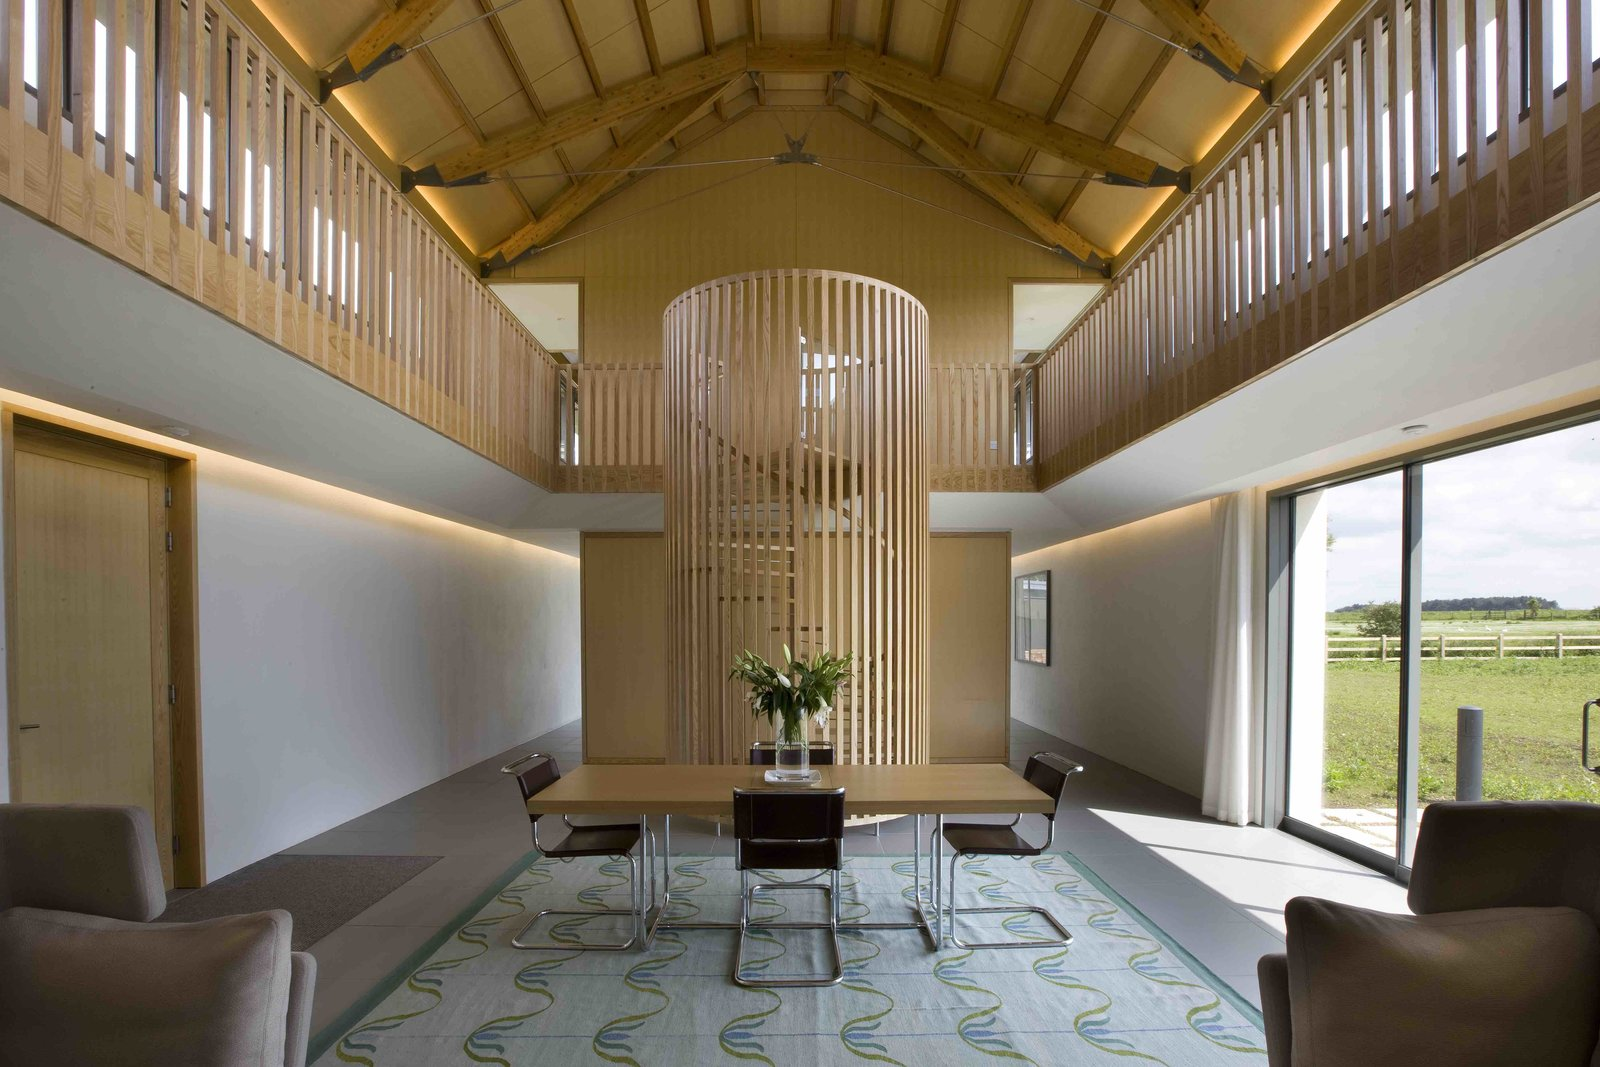 Photo 7 of 13 in 6 British Vacation Homes You Can Stay in That Were Designed by Renowned Architects